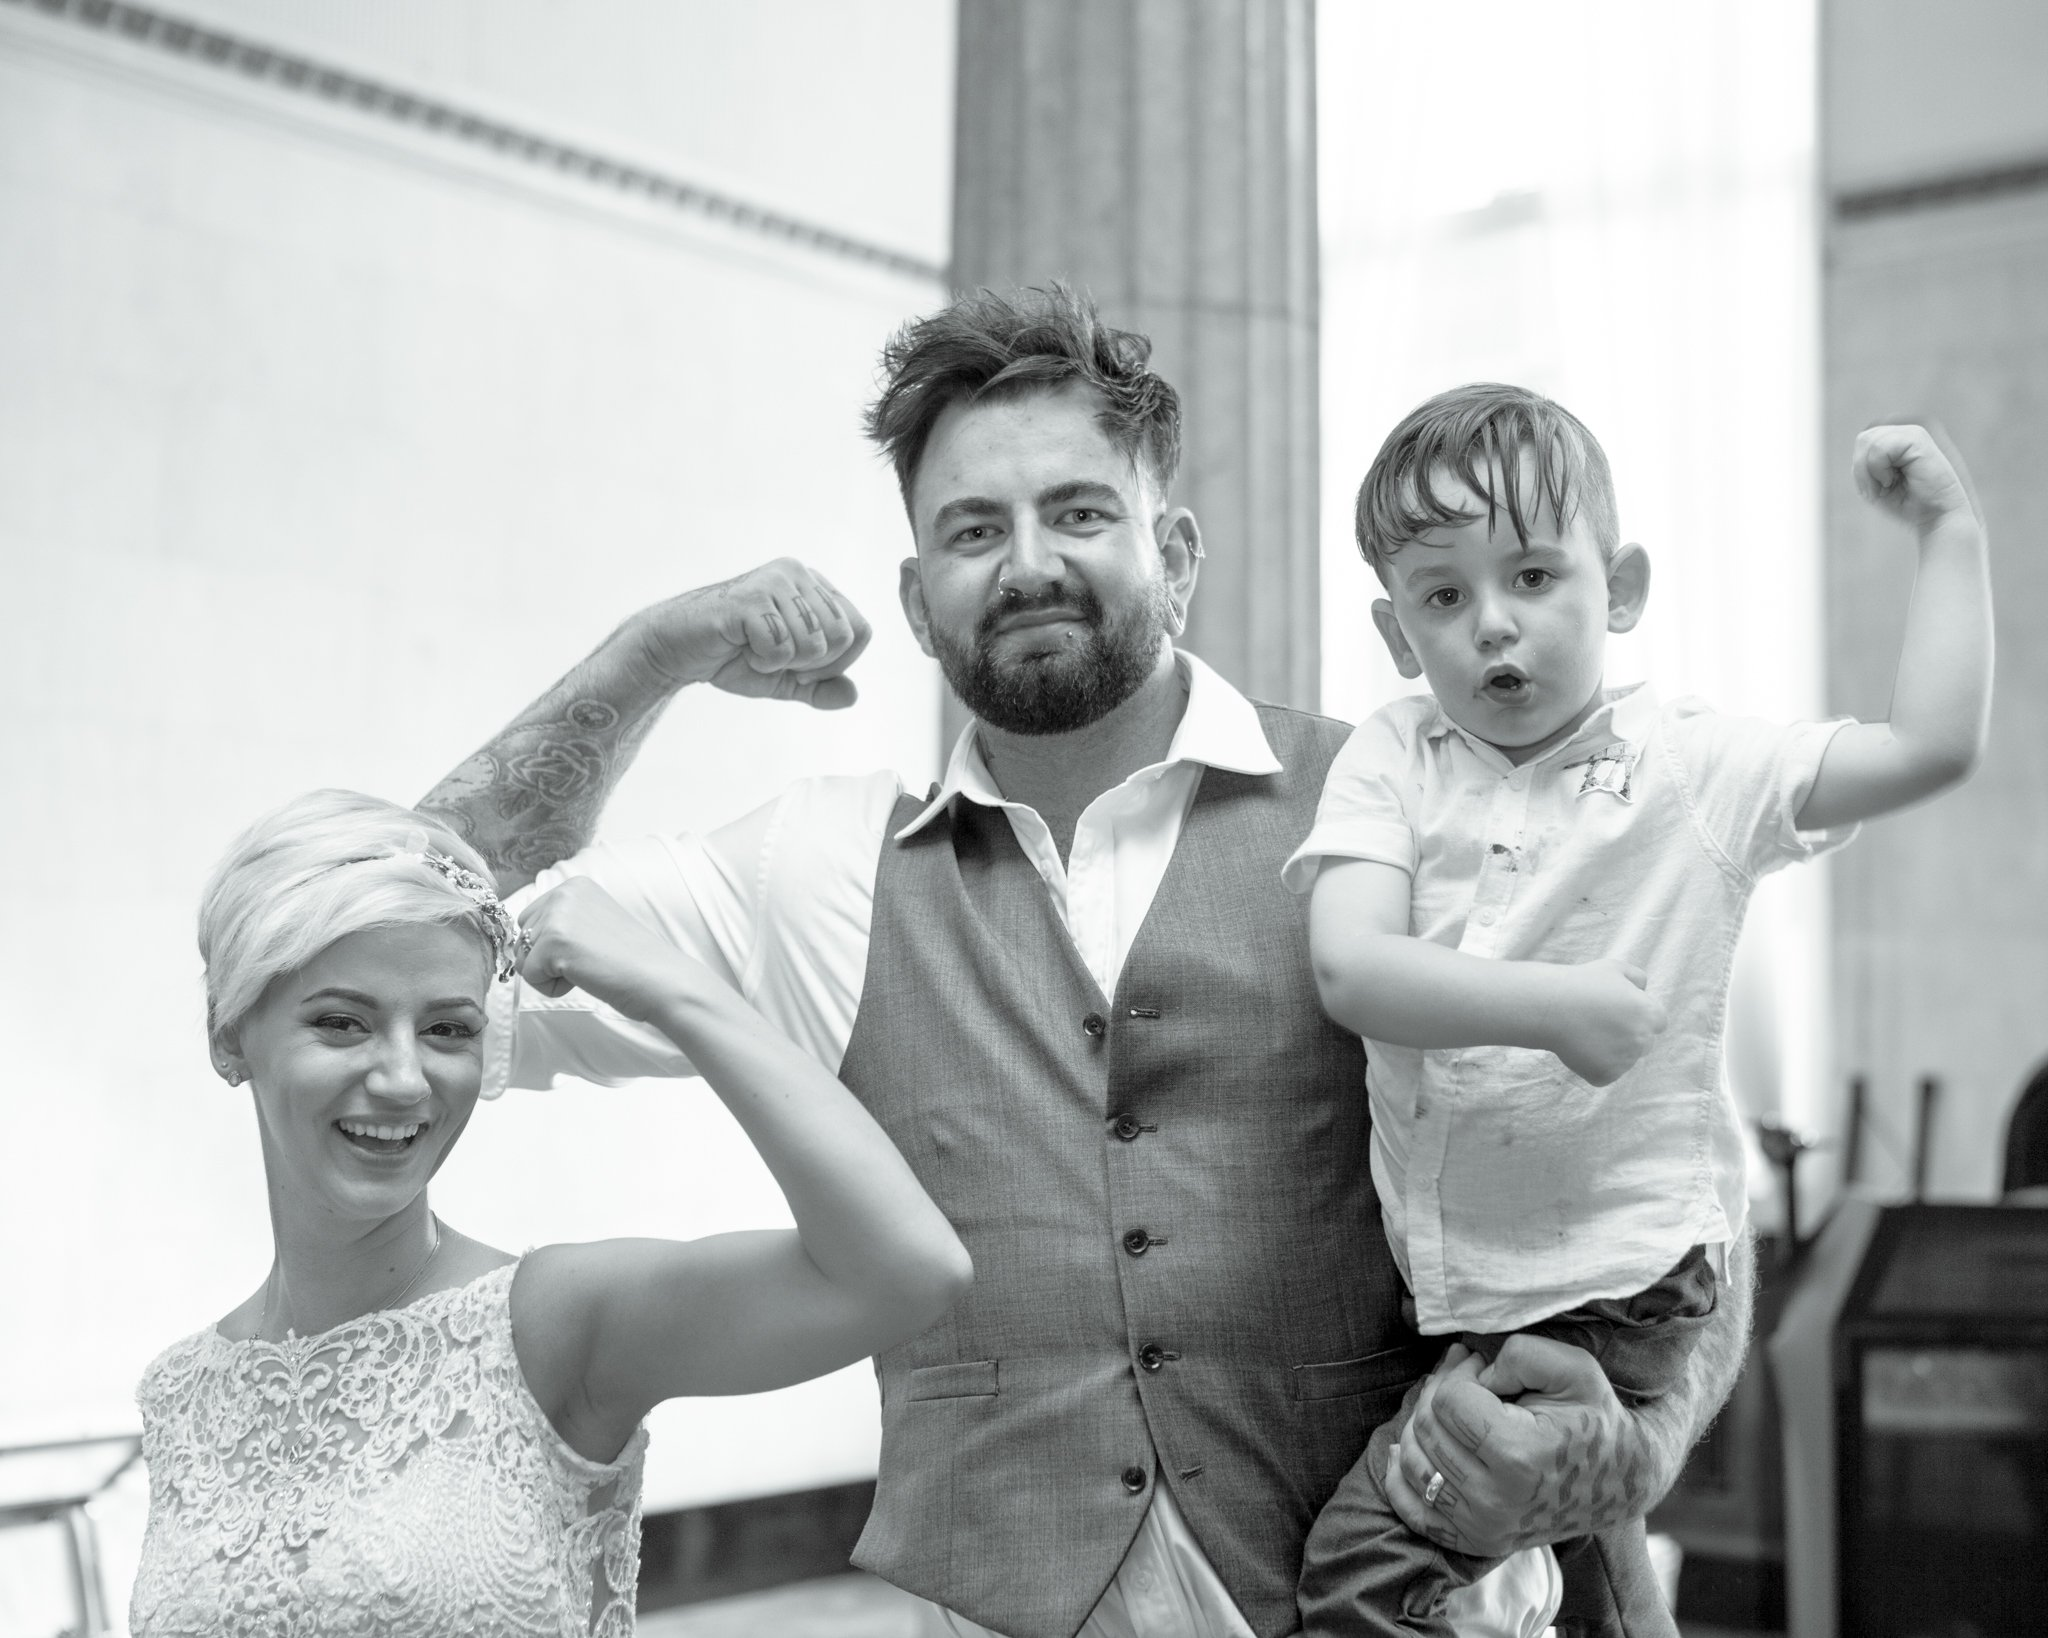 Bride with groom & son, Portland House Cardiff Wedding, Tania Miller Photography, Cardiff wedding photographer